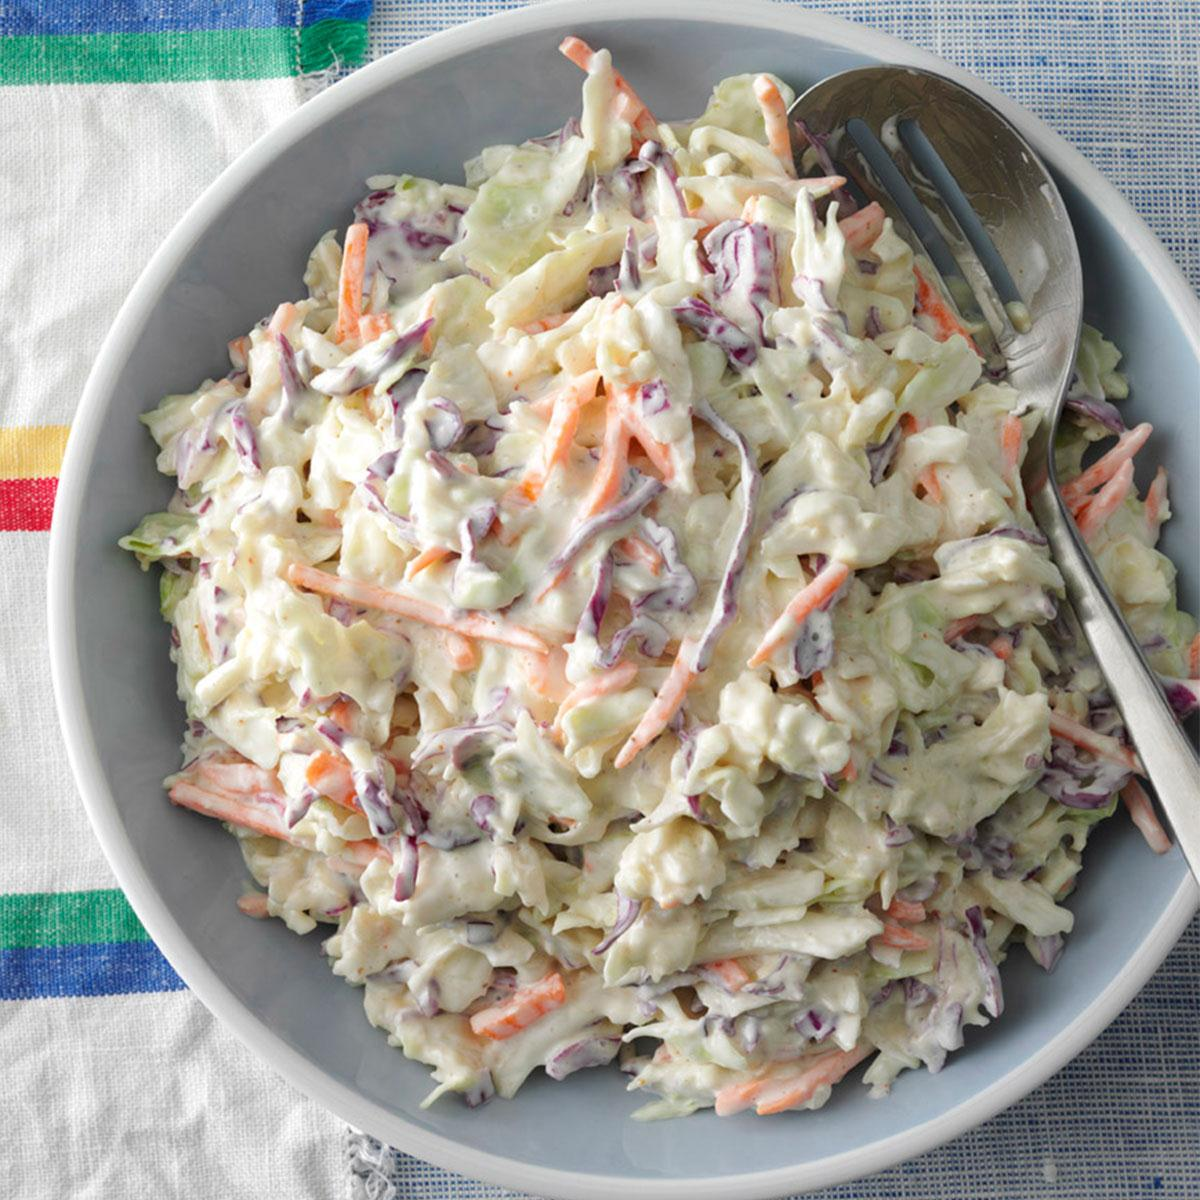 Creamy Coleslaw Recipe How To Make It Taste Of Home